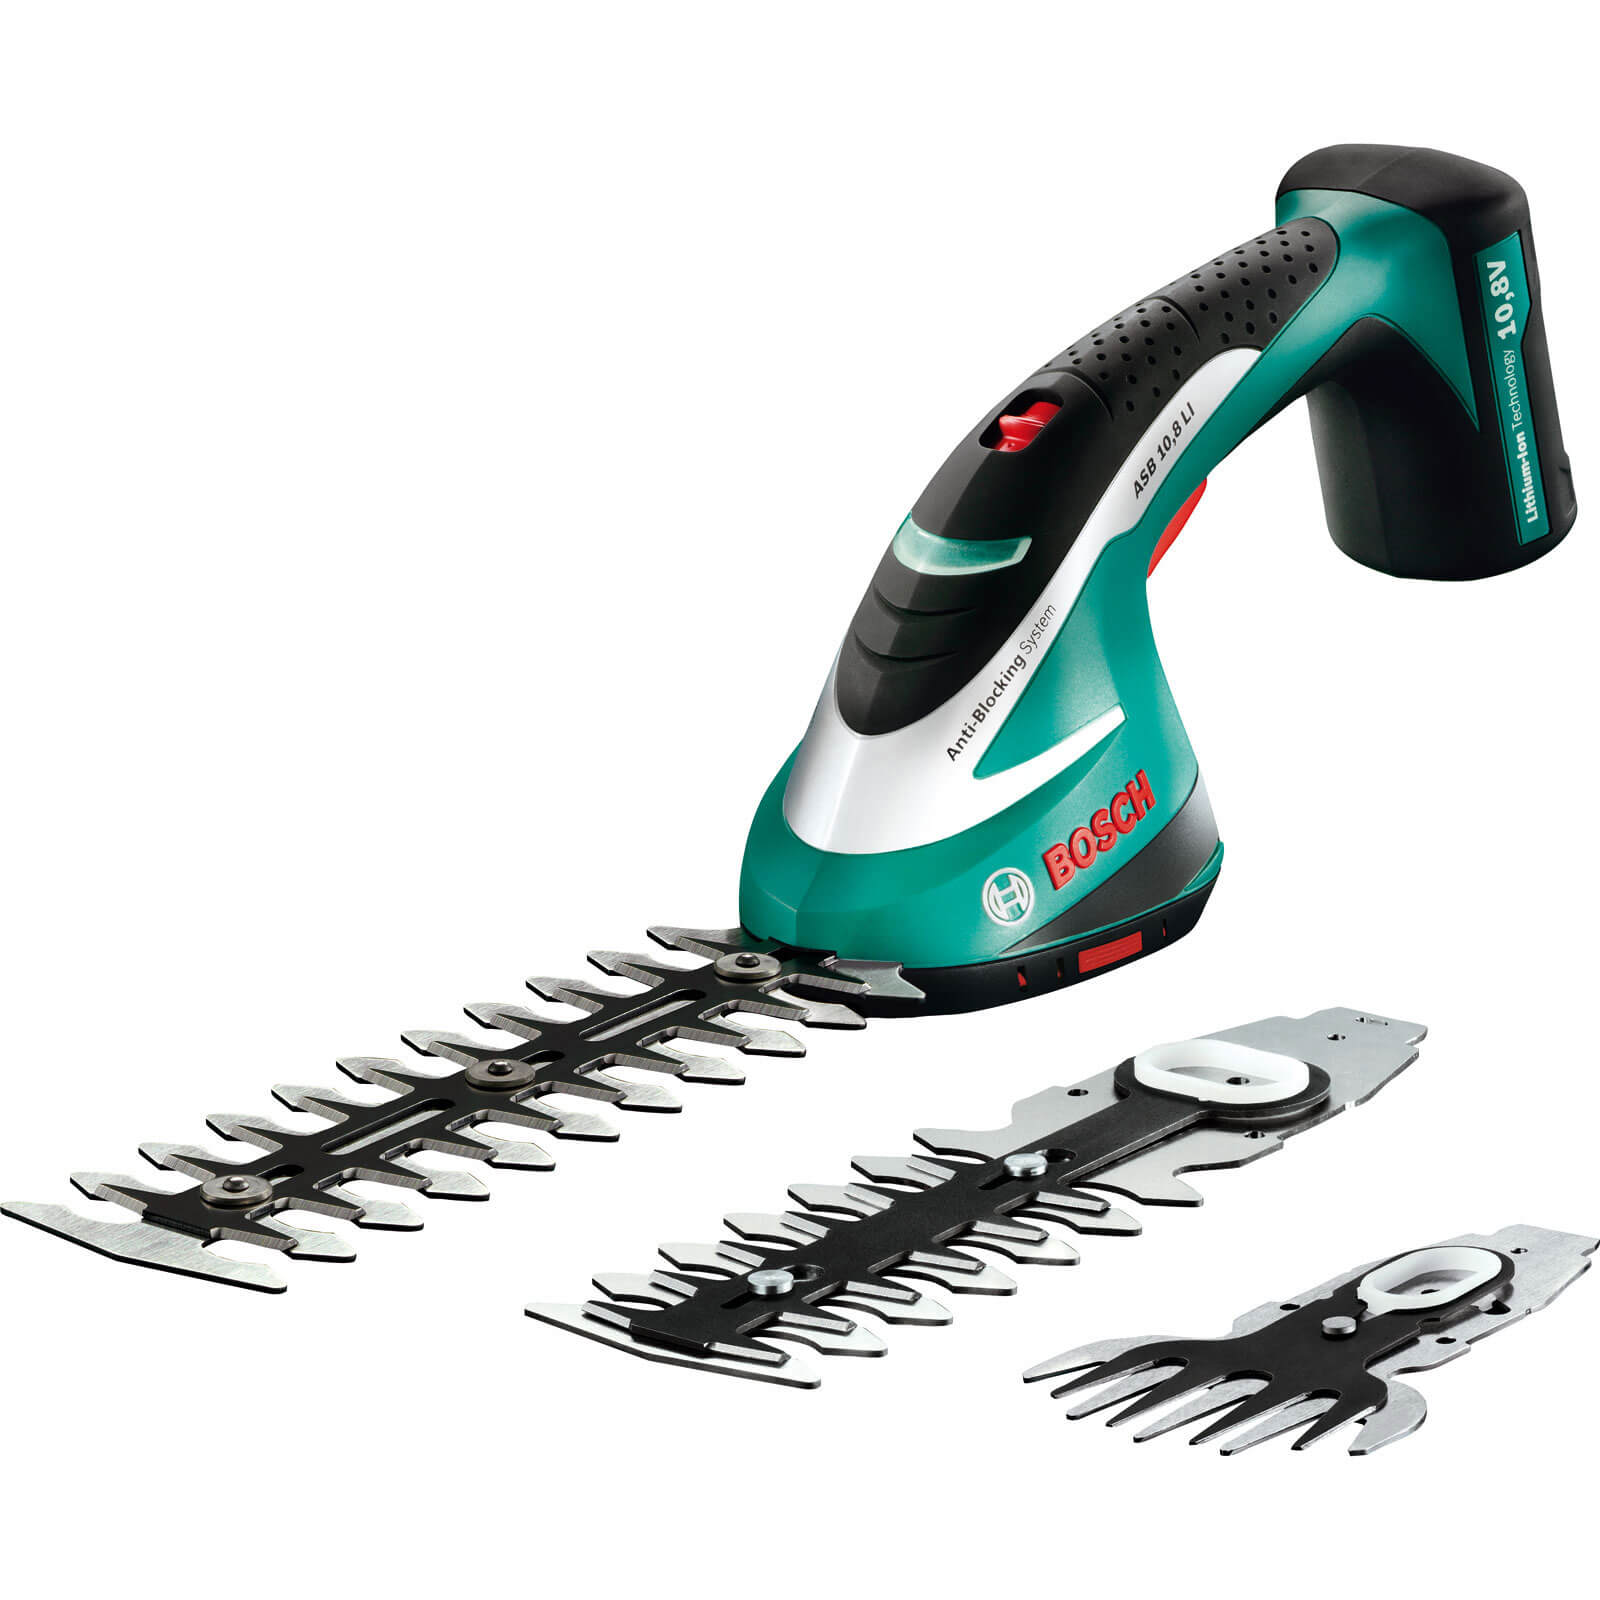 Bosch ASB 10.8v Cordless Shrub Shear Kit with Internal Lithium Ion Battery 1.3ah